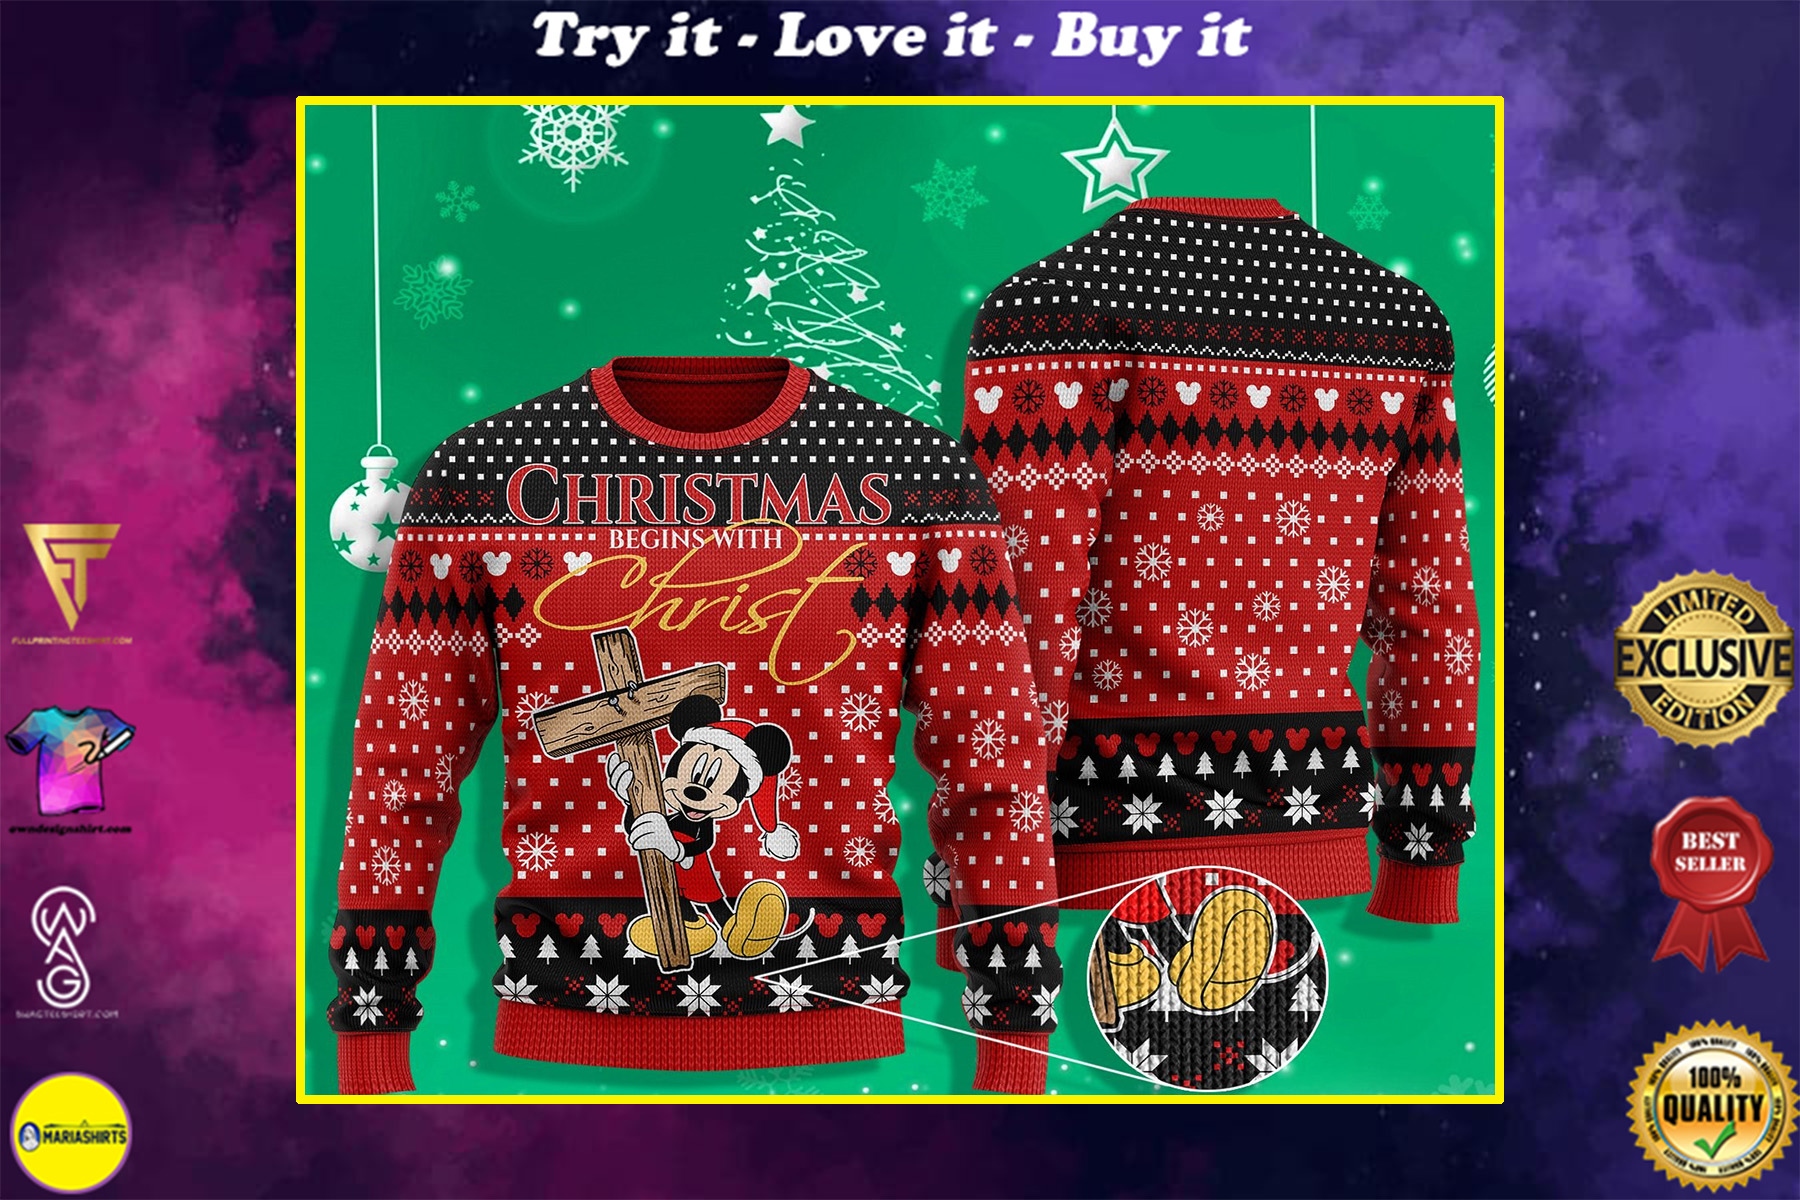 mickey mouse christmas begins with Christ ugly christmas sweater